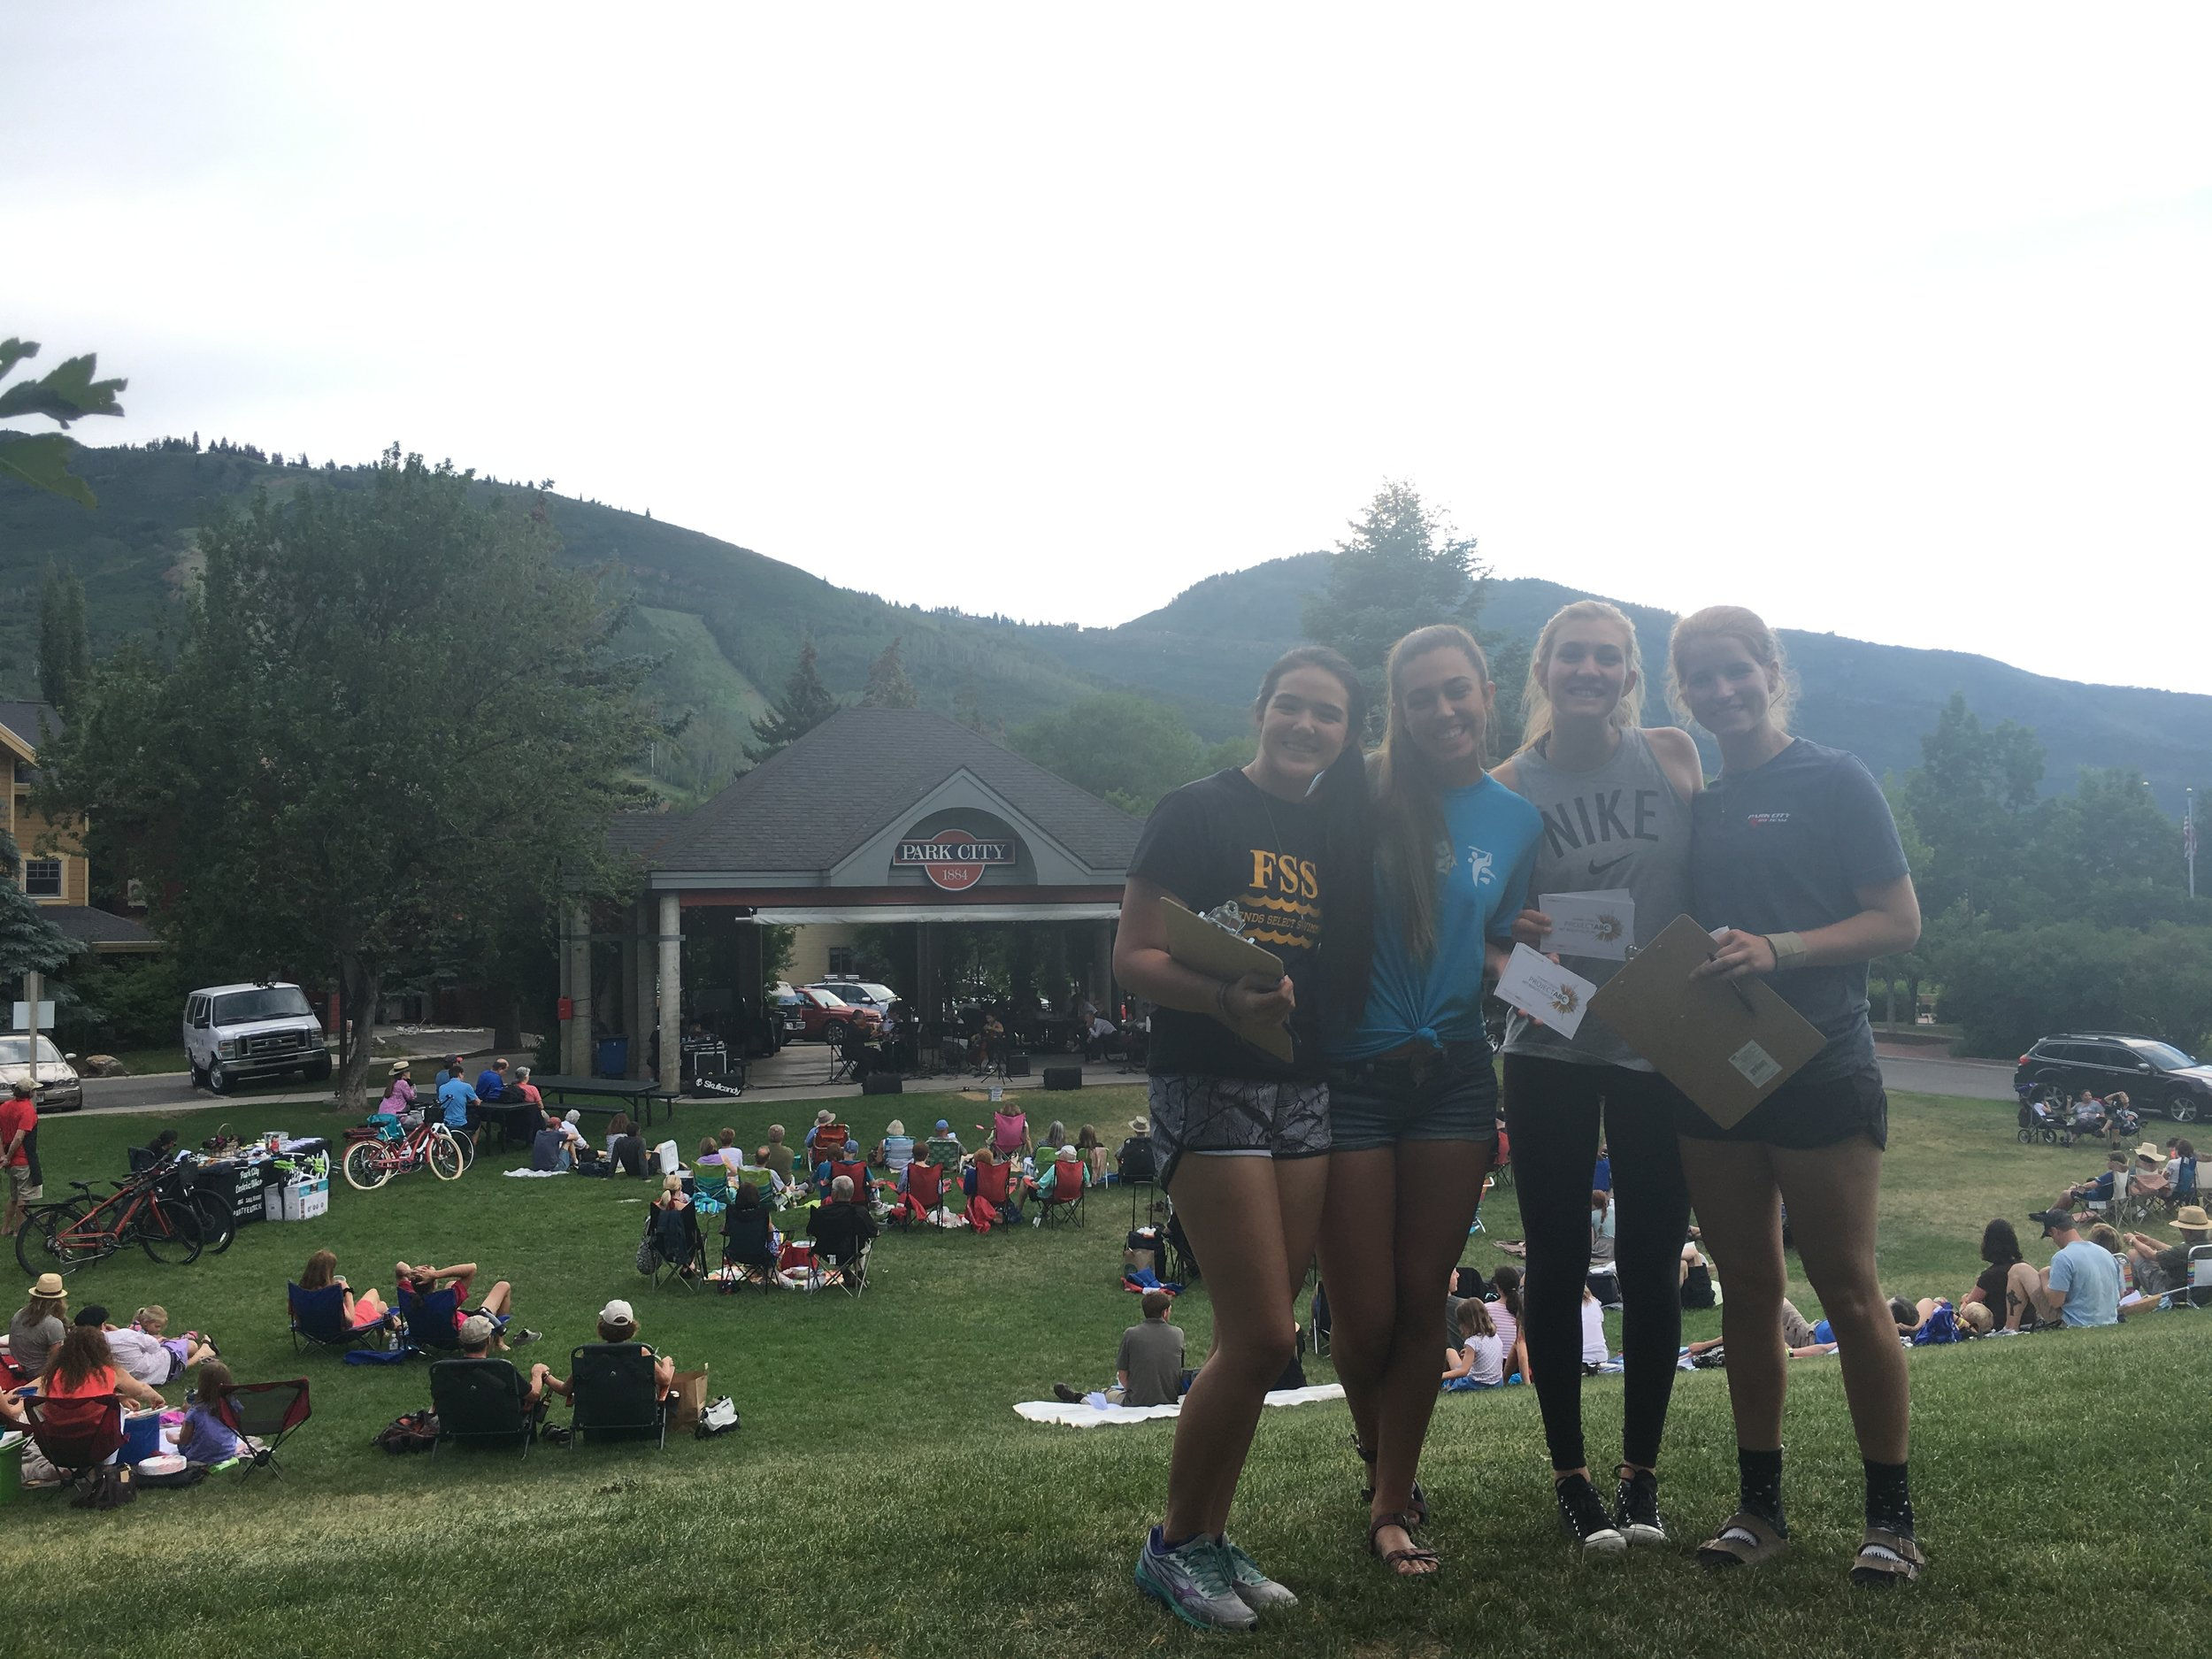 The third Youth Workgroup meeting was held at City Park in Park City on July 20, 2017. Our meeting was held alongside a Mountain Town Music concert.During our meeting, we discussed our definition of Arts and Culture and explored the idea that Arts and Culture are intrinsically tied to many aspects of life in Summit County. At the conclusion of our meeting the Youth Workgroup Members visited with patrons of the concert and spread the word about ProjectABC.